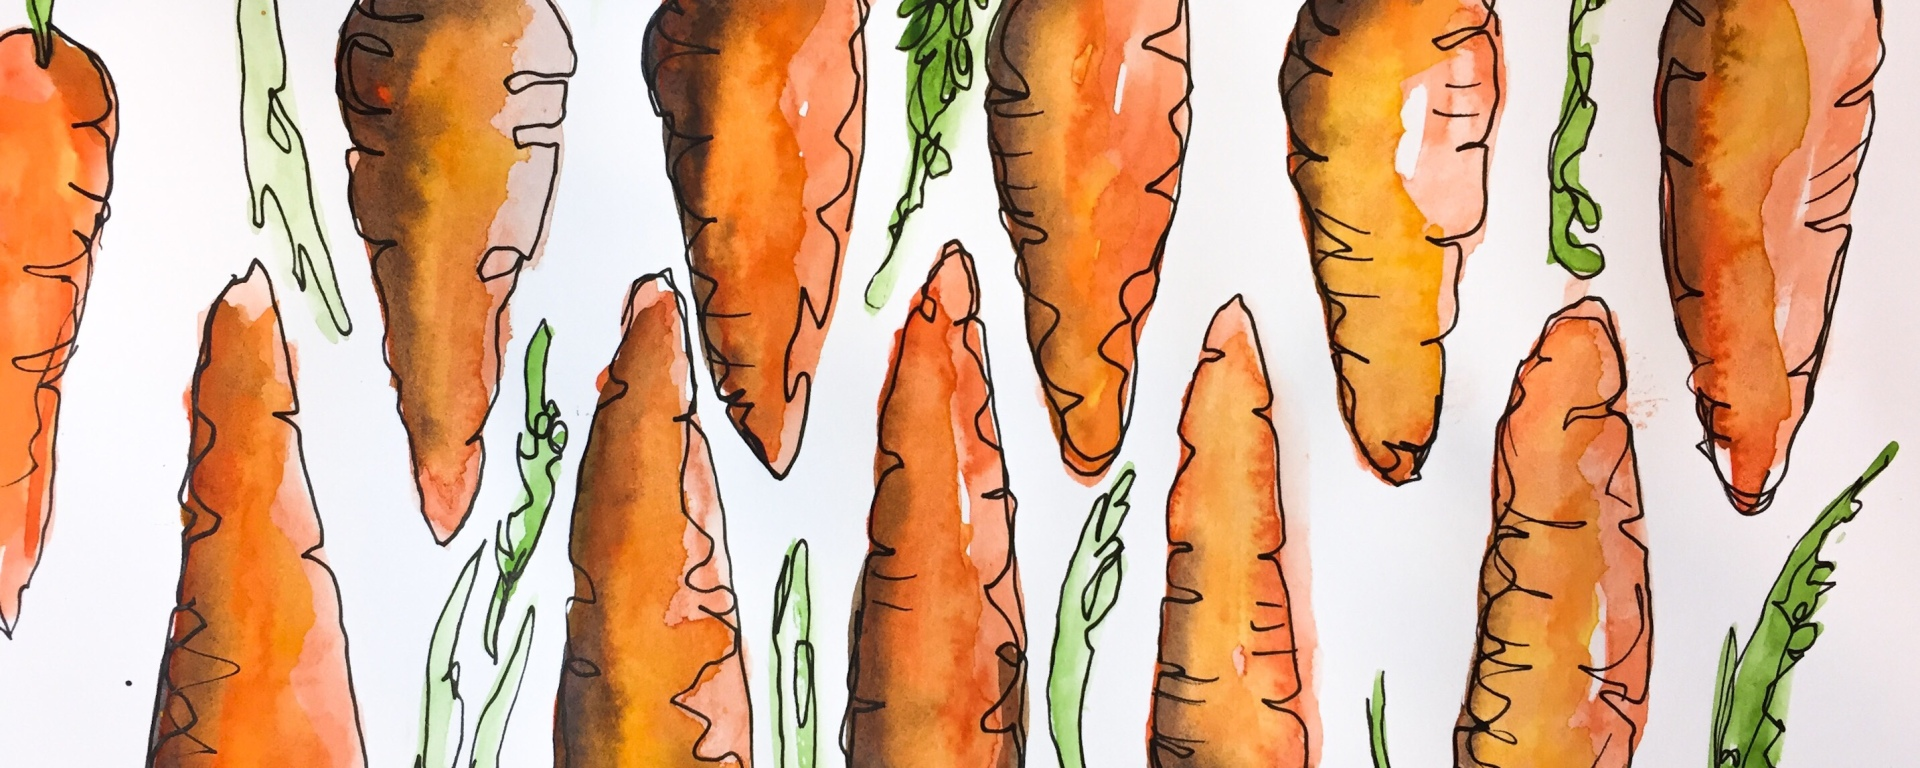 Learn how to paint a series of carrot creating a fun pattern with this watercolor time lapse painting.